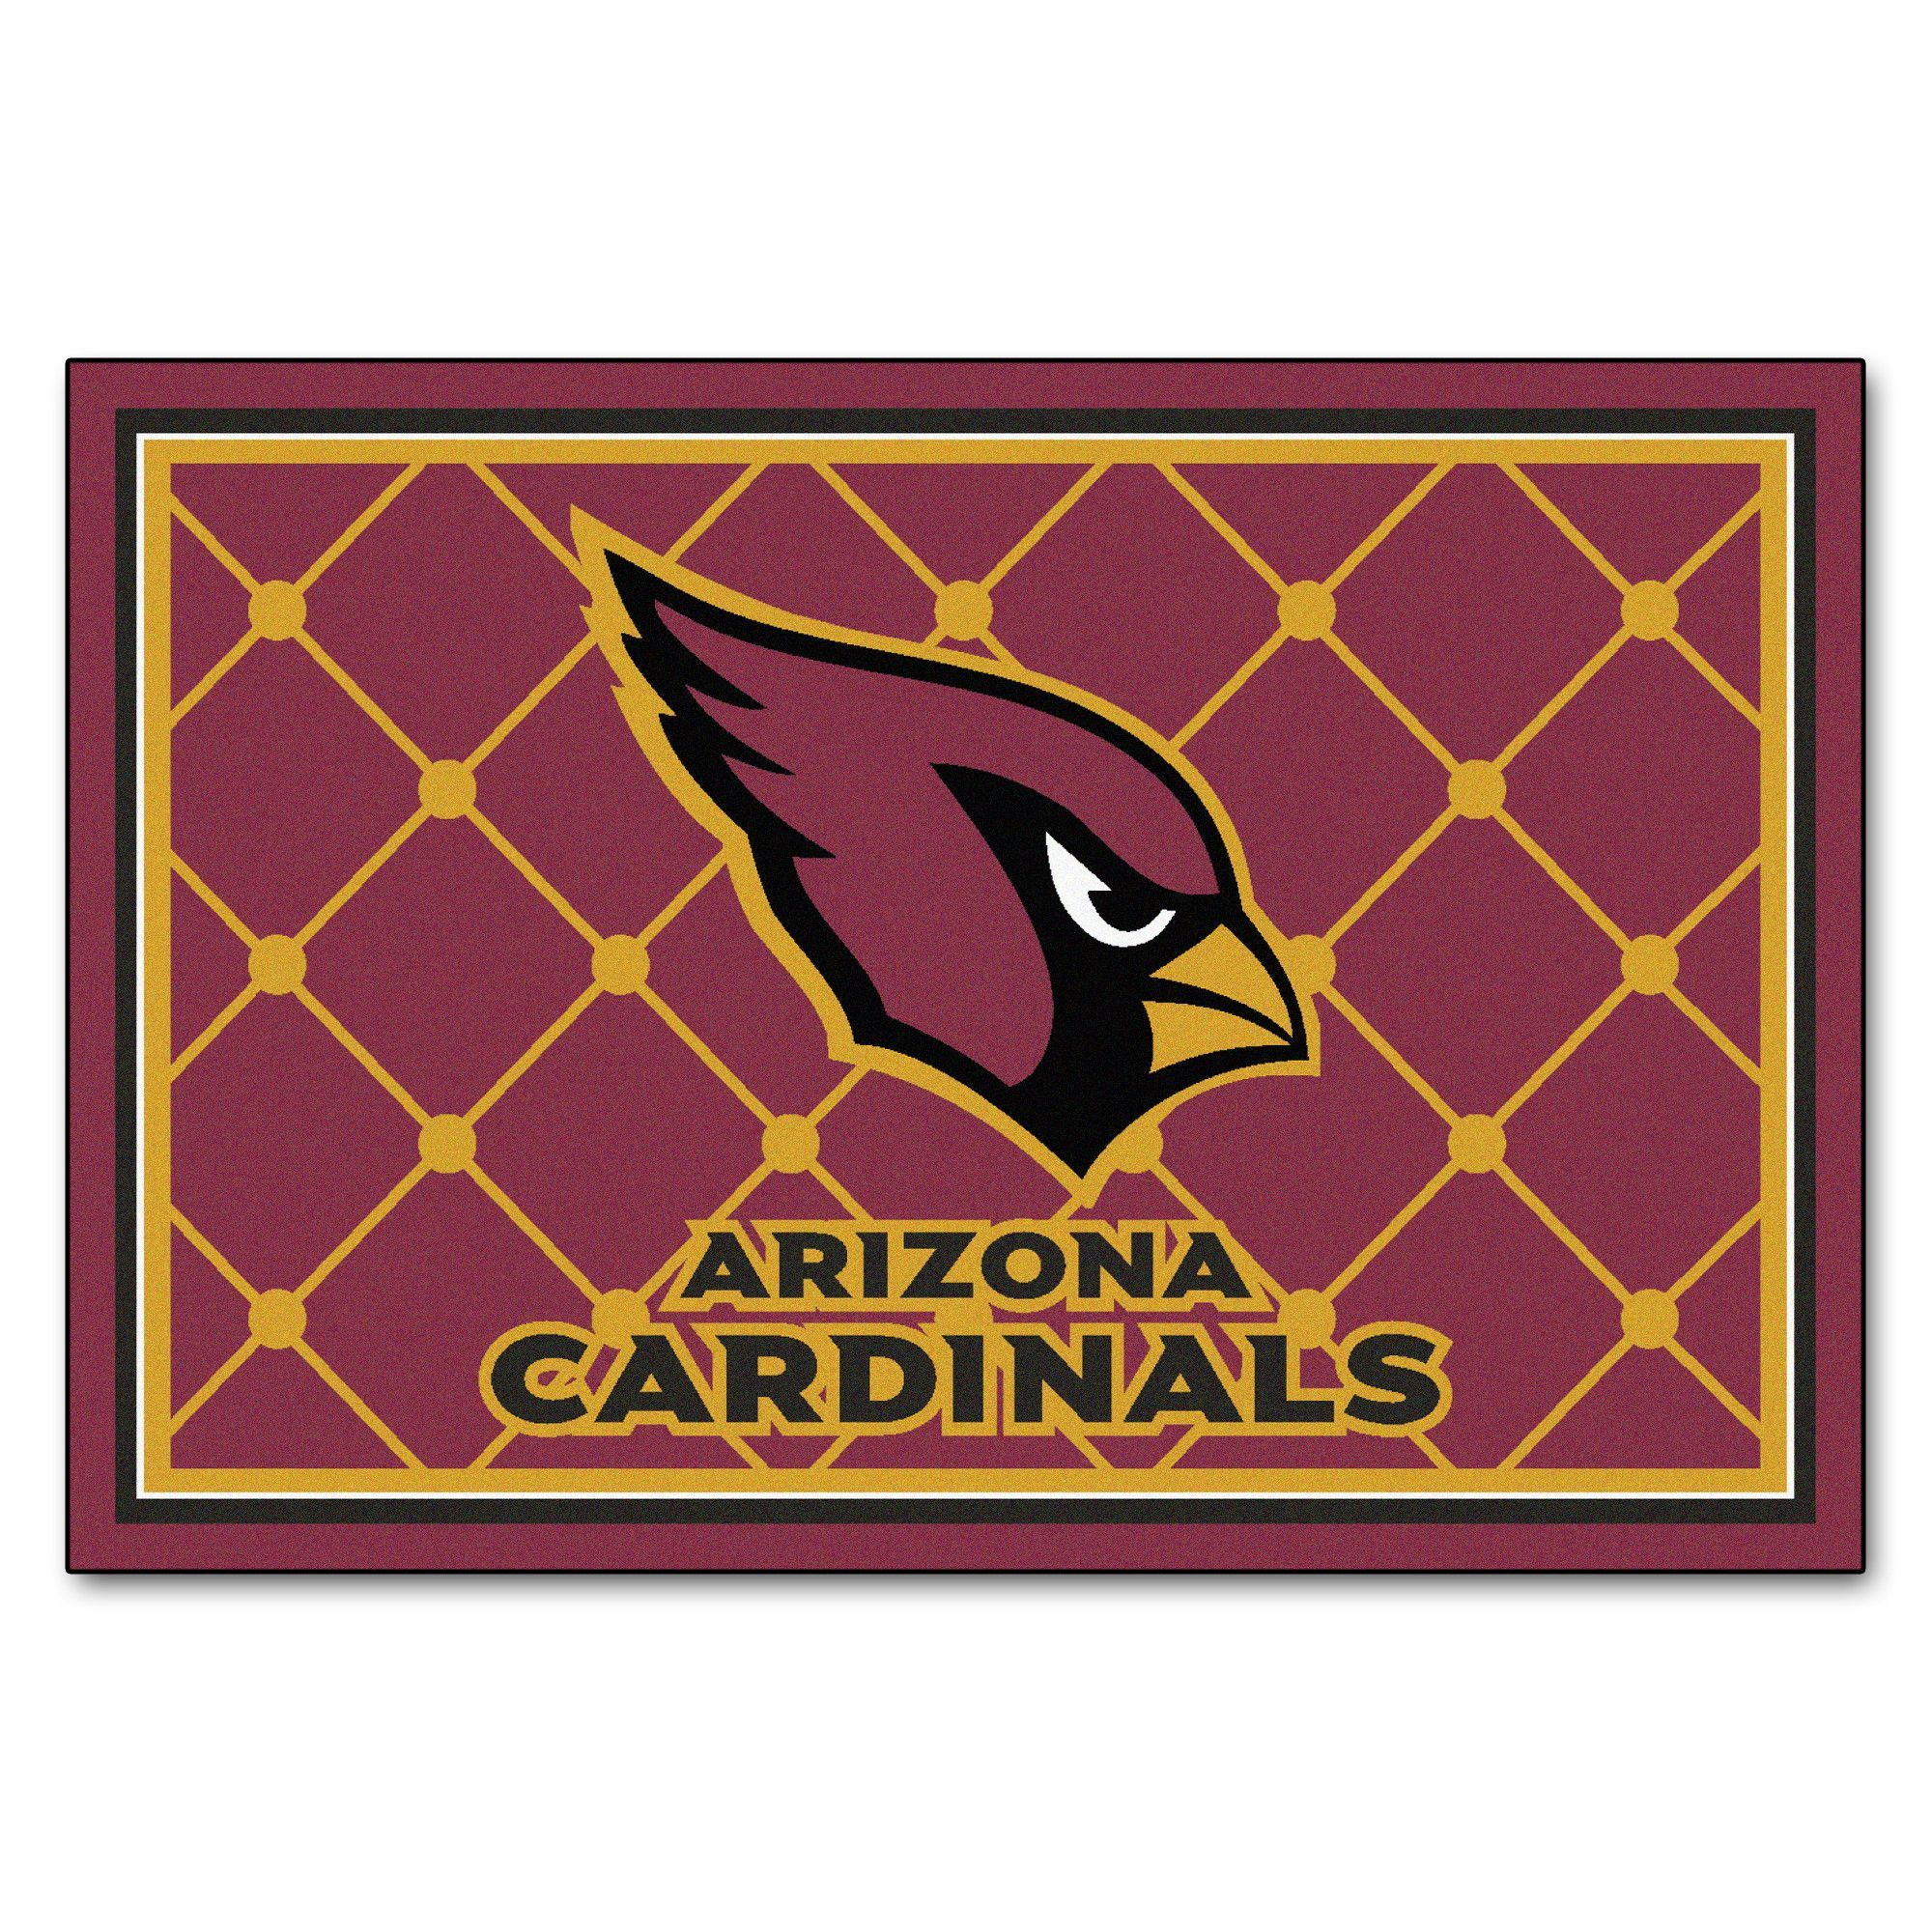 NFL Arizona Cardinals Rug 5x8 Show your team pride and add style